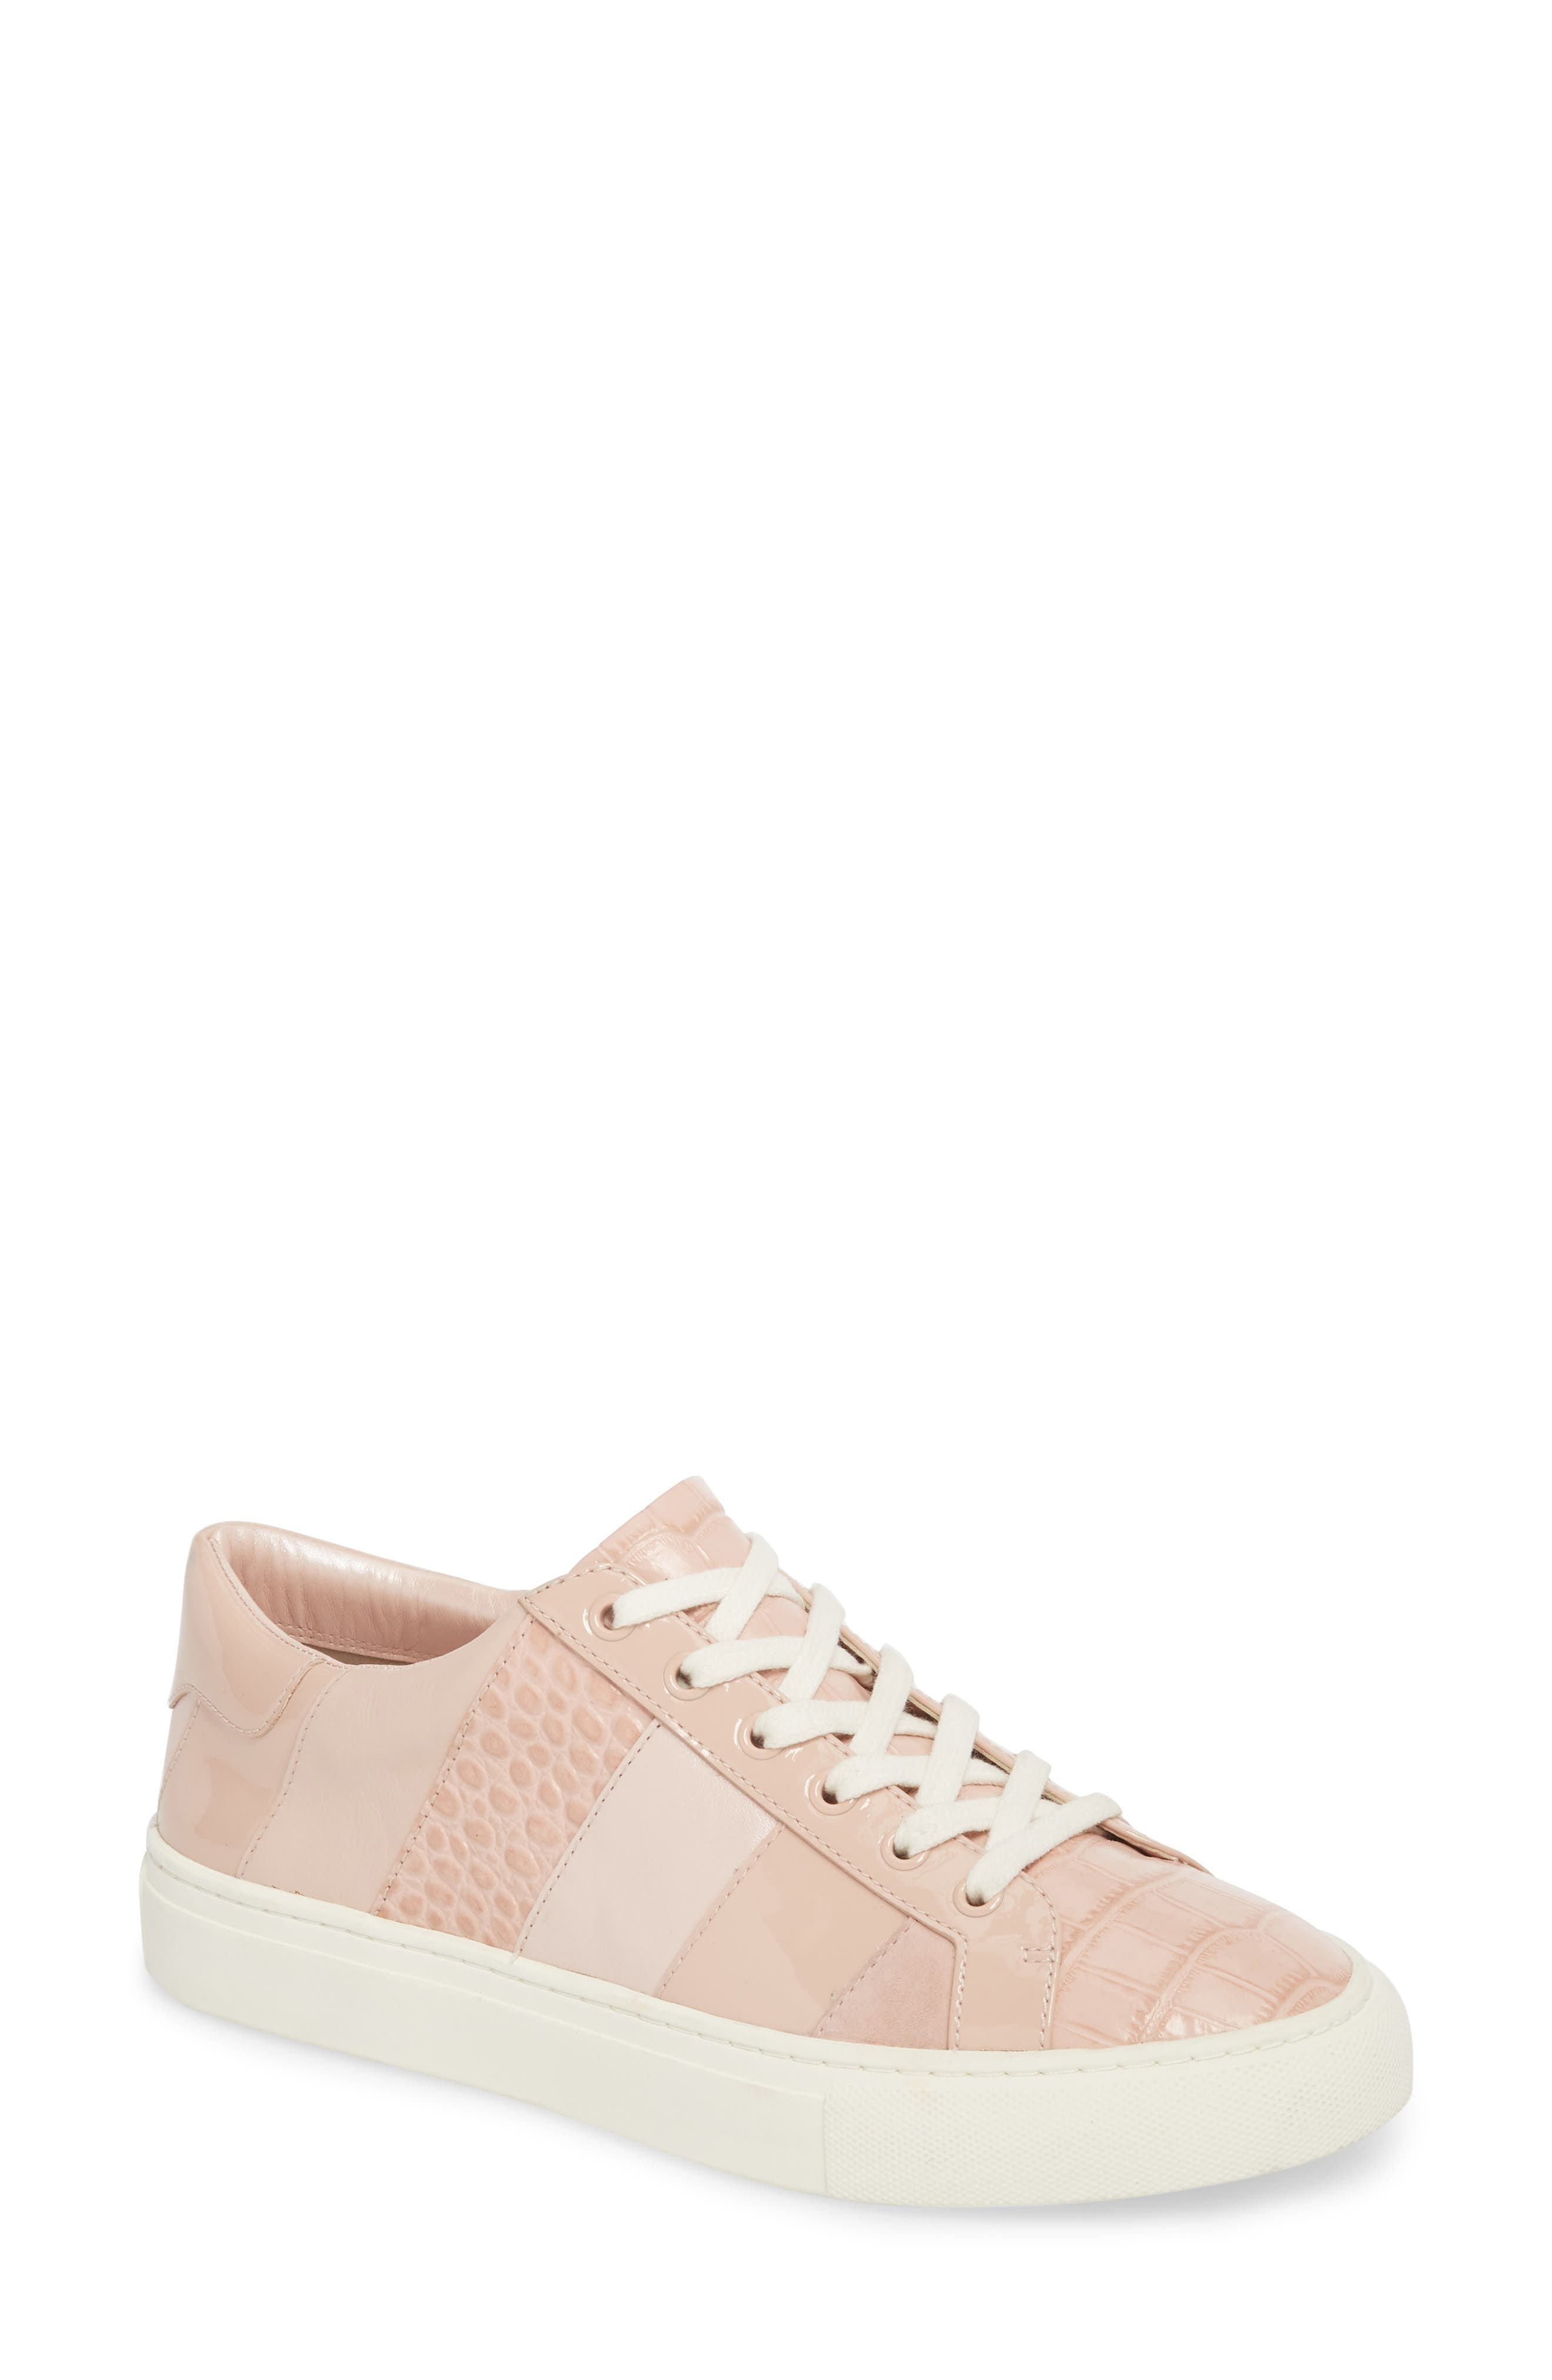 Tory Burch Ames Sneaker (Women)